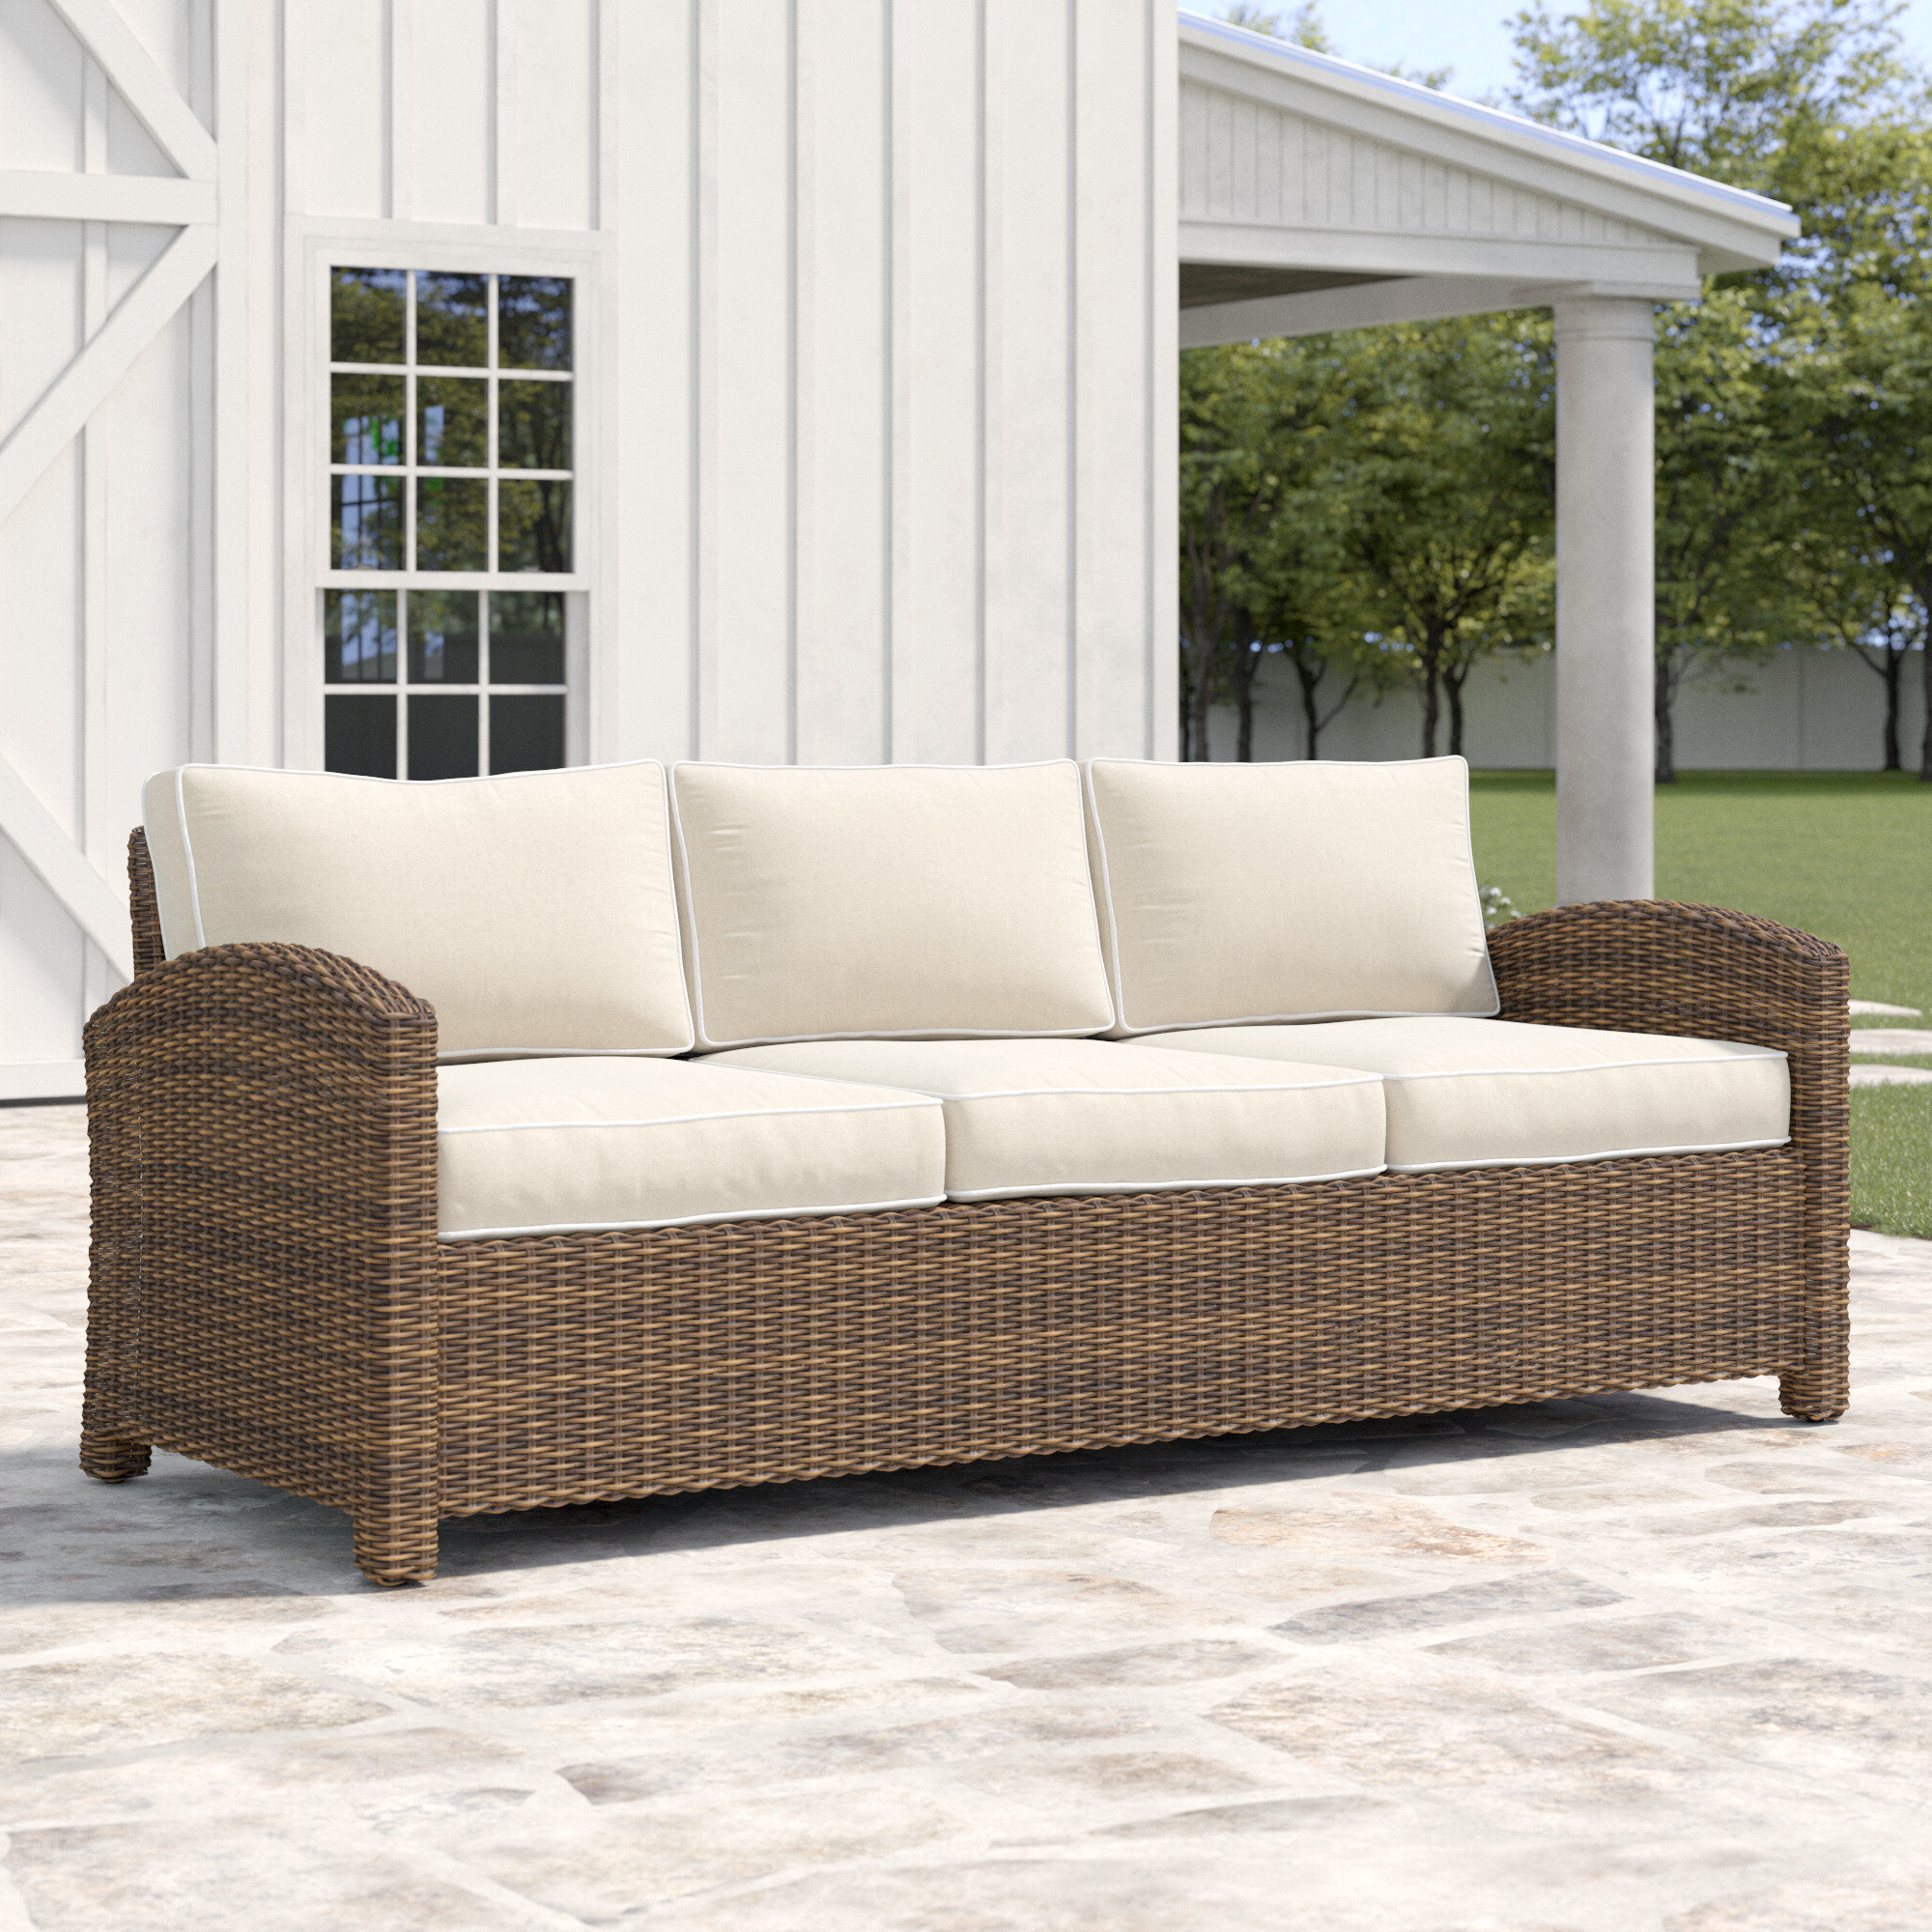 Popular 3 Seat Outdoor Sofa You'll Love In  (View 22 of 25)